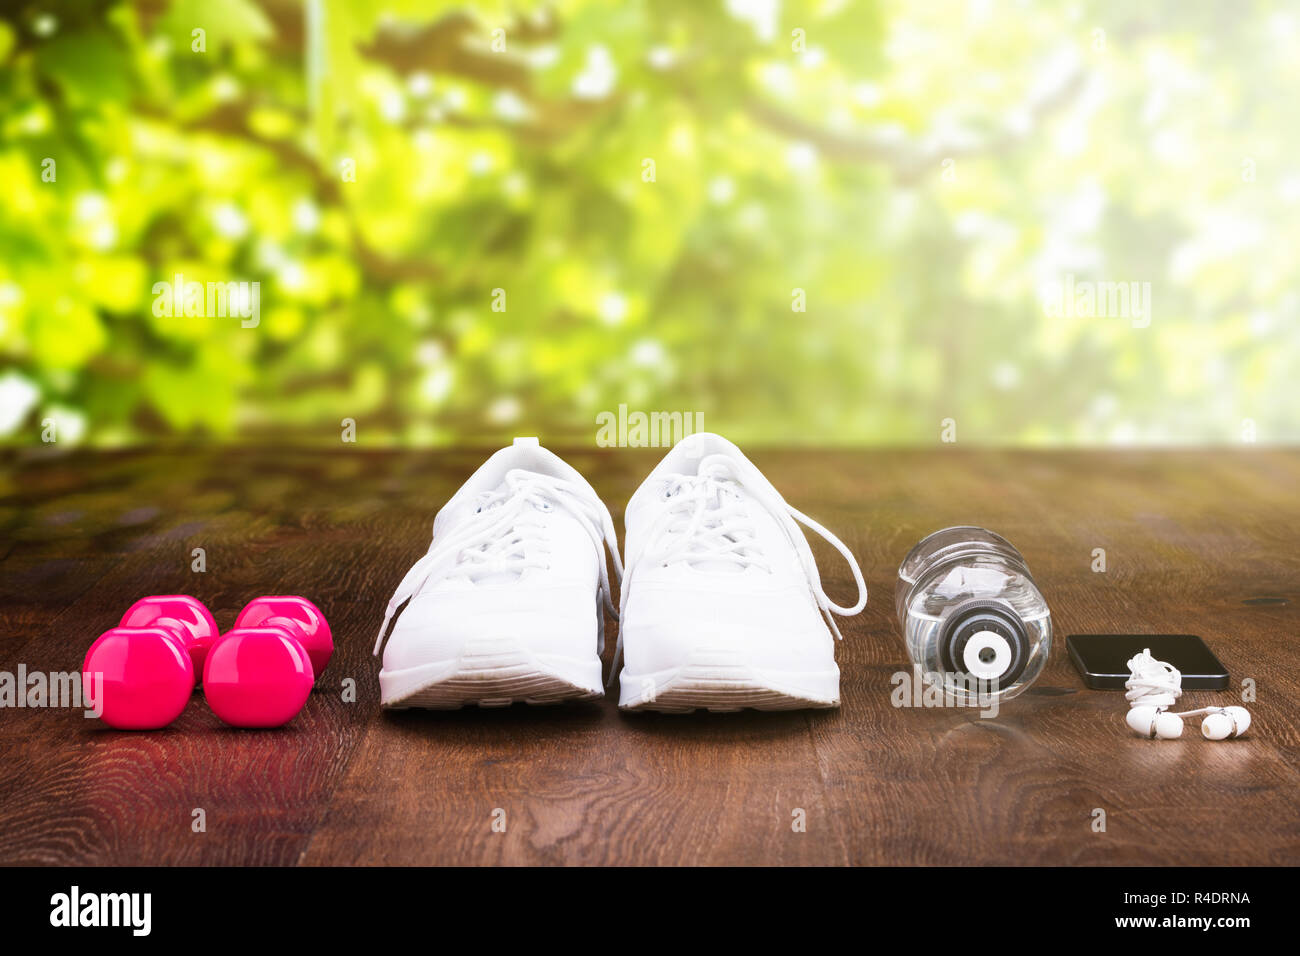 Personal Accessory On Wooden Floor - Stock Image